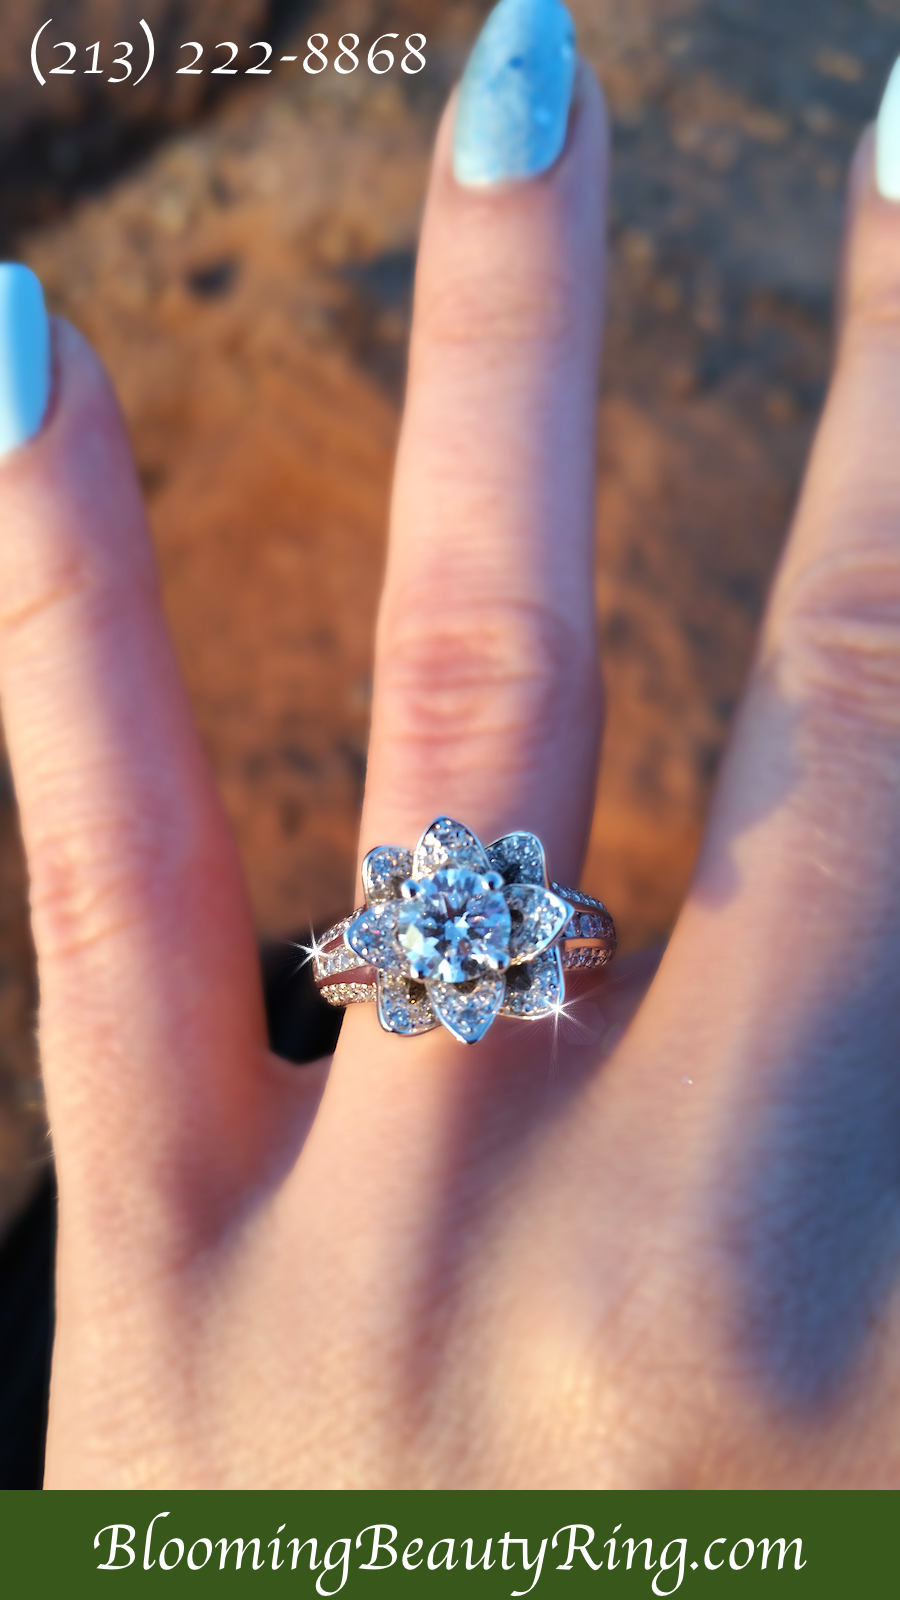 BloomingBeautyRing.com  (213) 222-8868 - This #EngagementRing picture taken and…